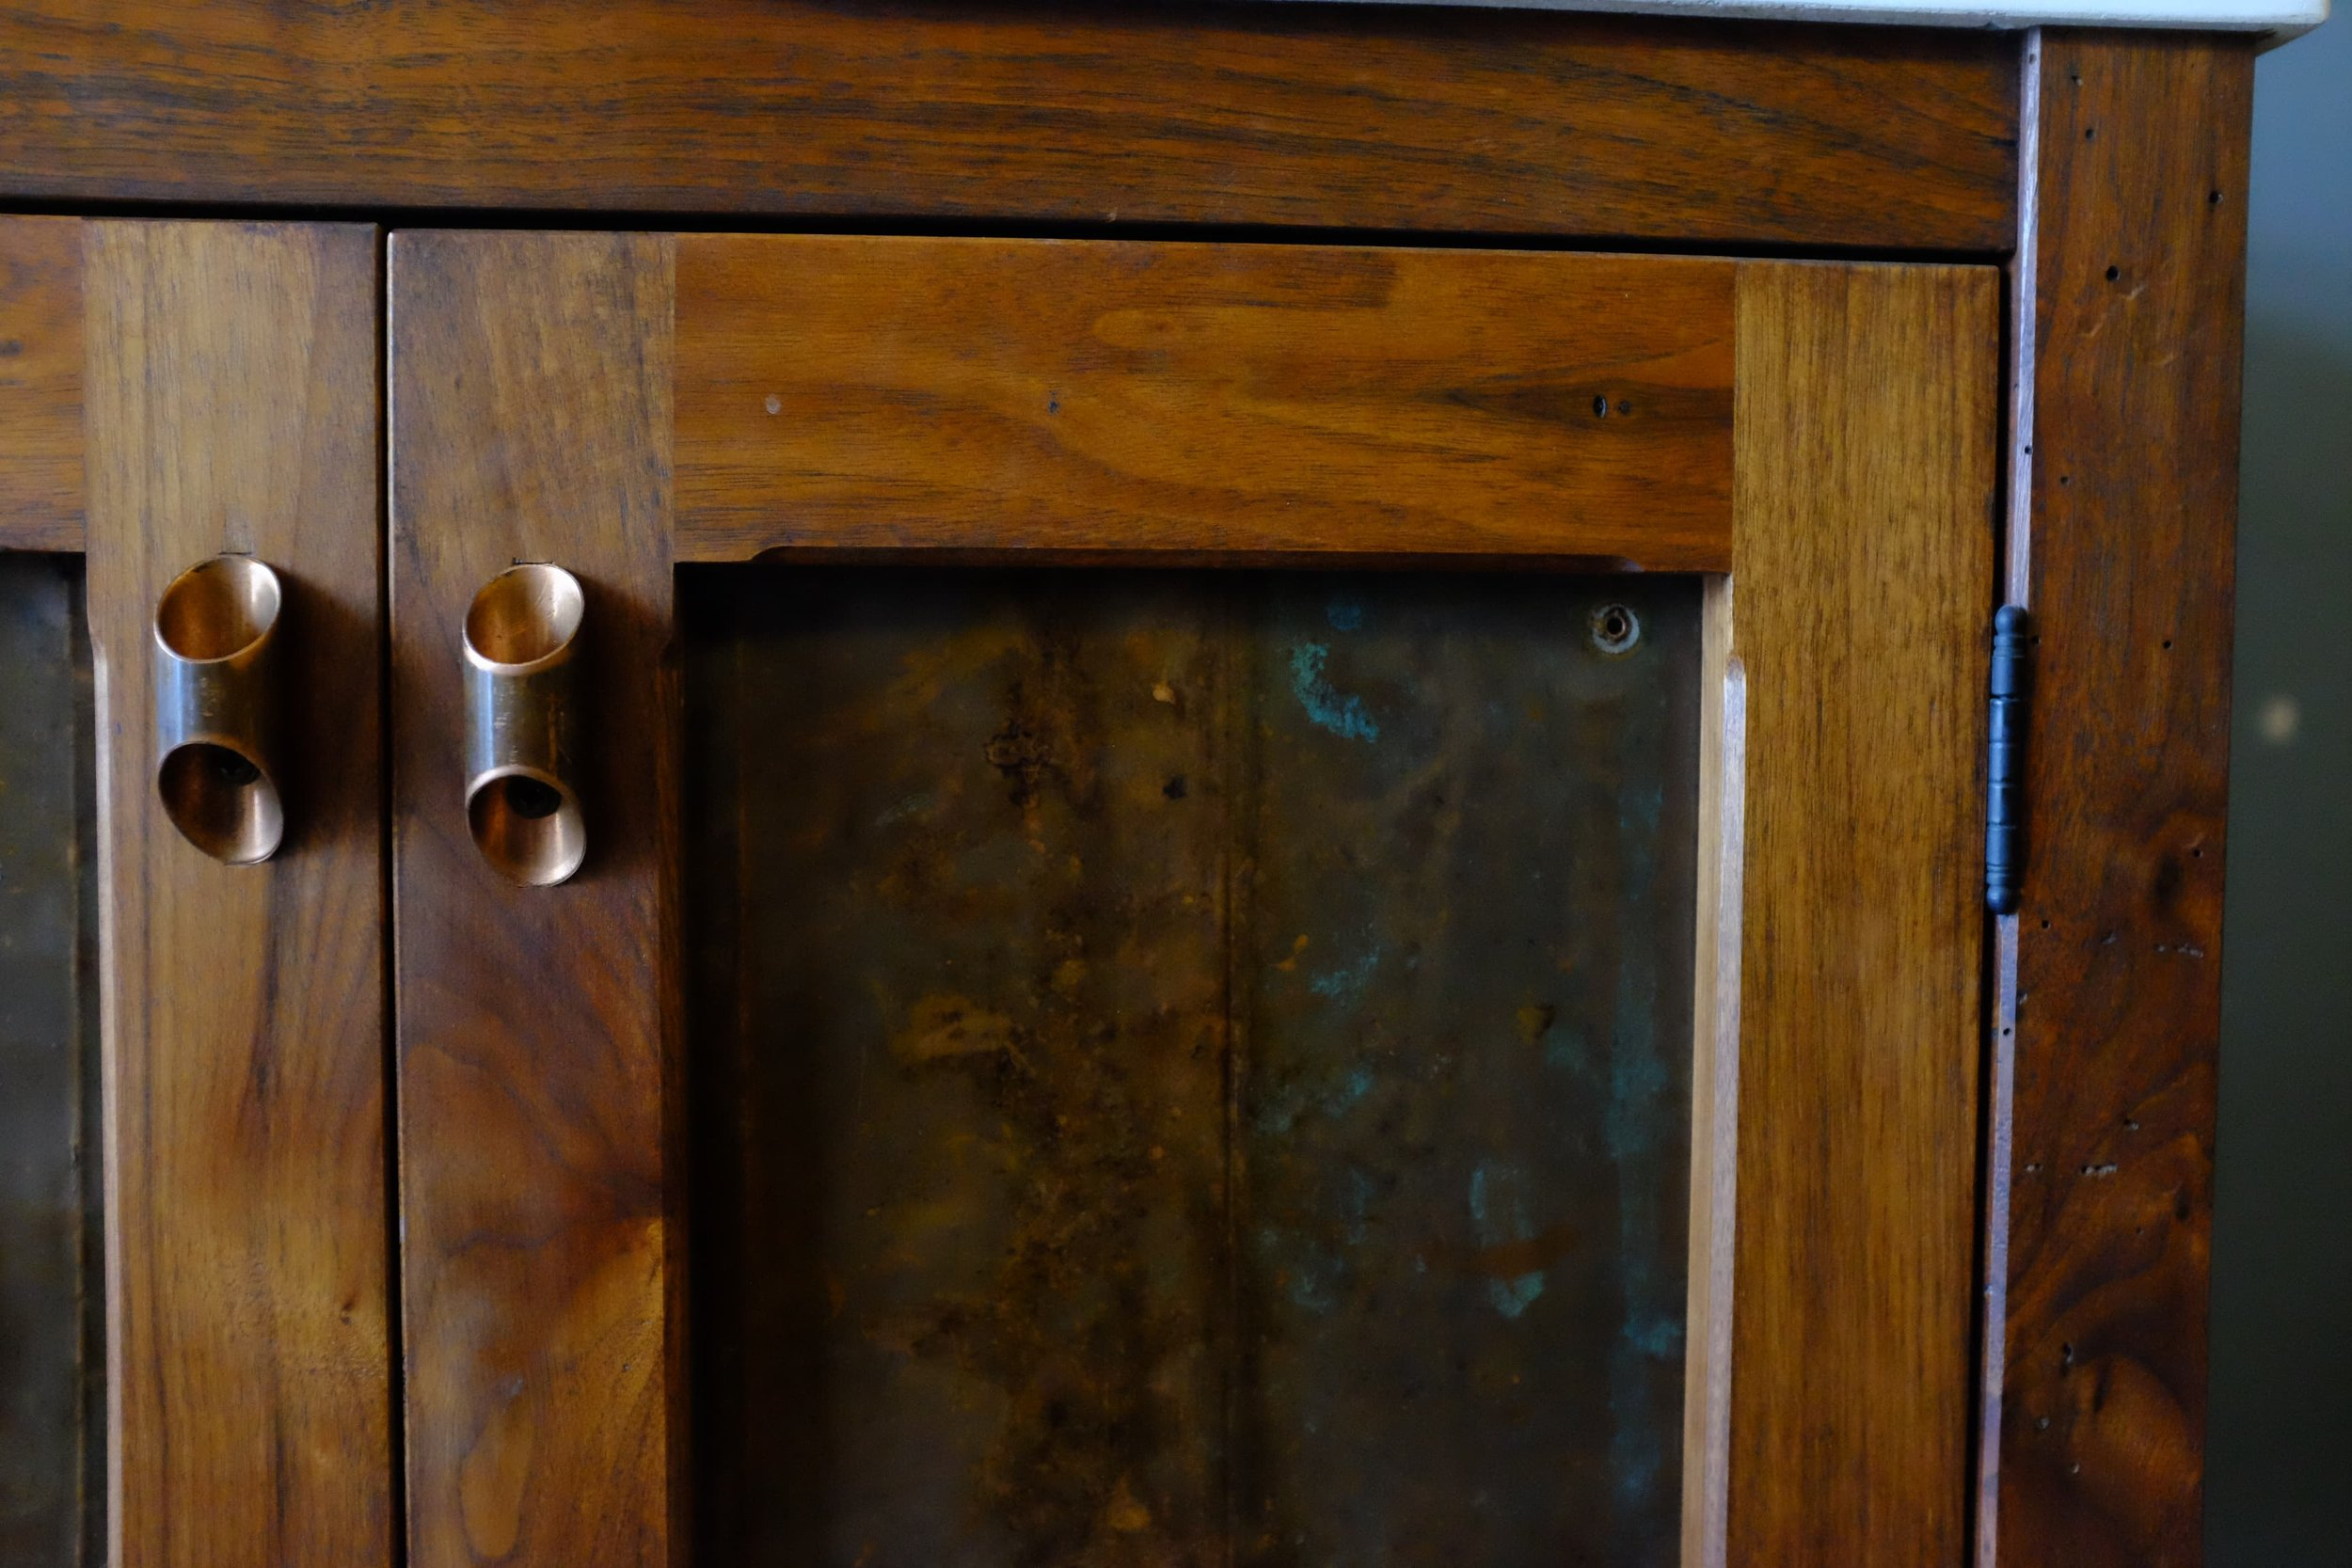 A beautiful custom walnut vanity cabinet using reclaimed copper for the panels and pulls. #residential